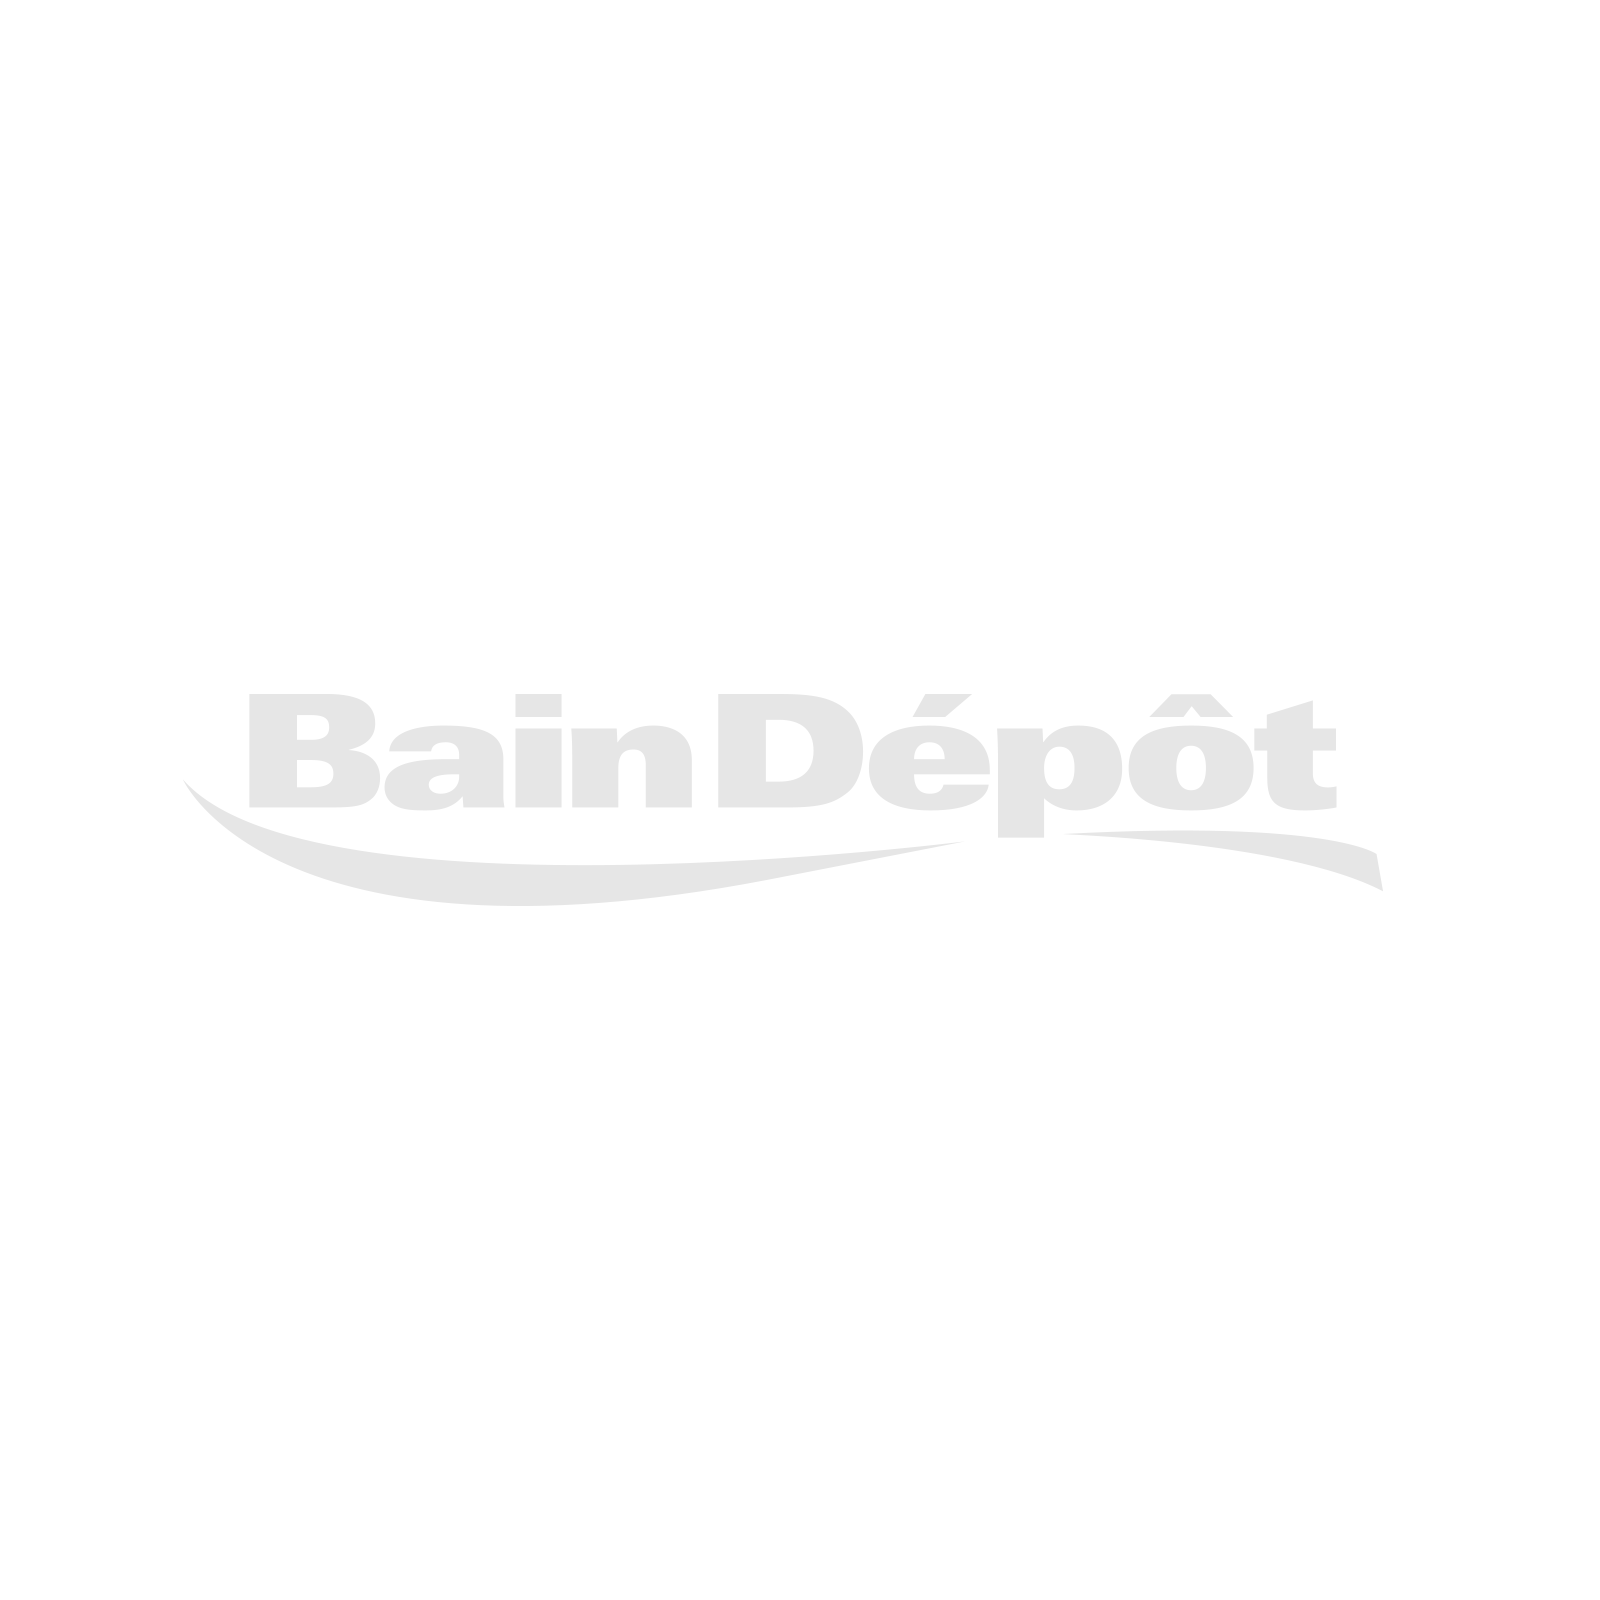 "40"" x 40"" Round shower kit with door, base, walls and chrome faucet"